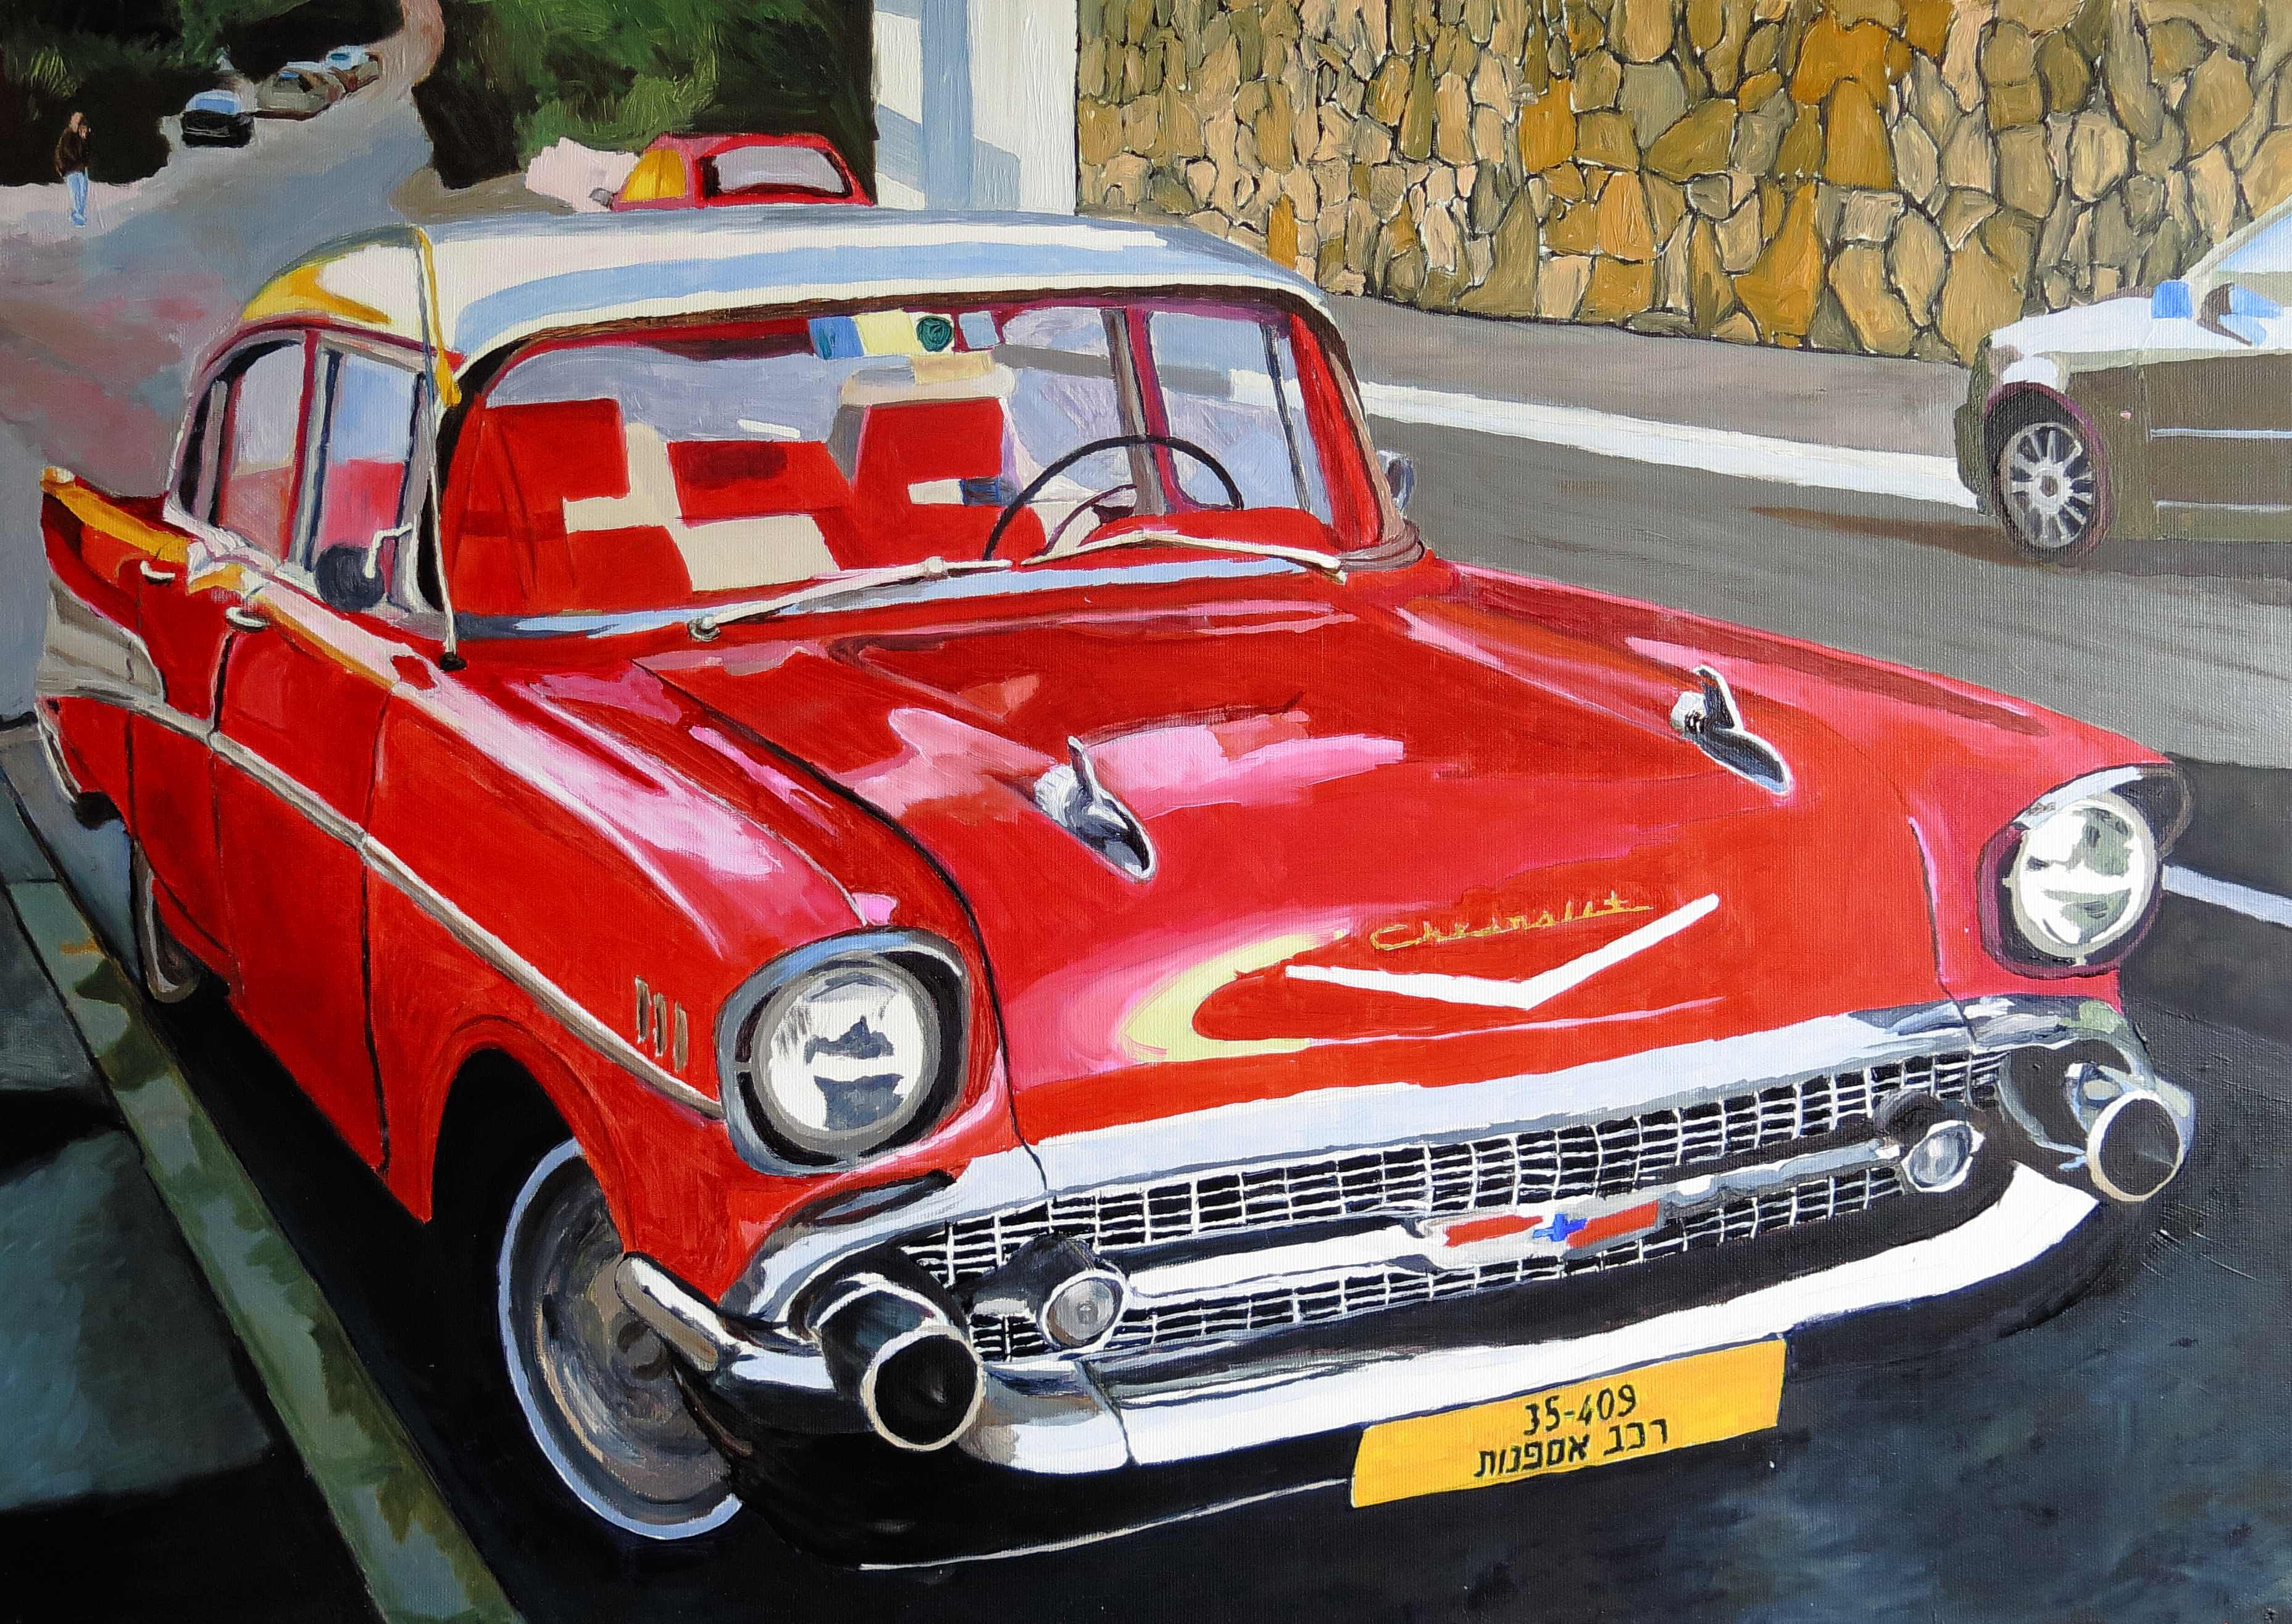 Red chvrolet old car Oil on canvas w70xh50cm 2016 1m art@ryair.co.il ...